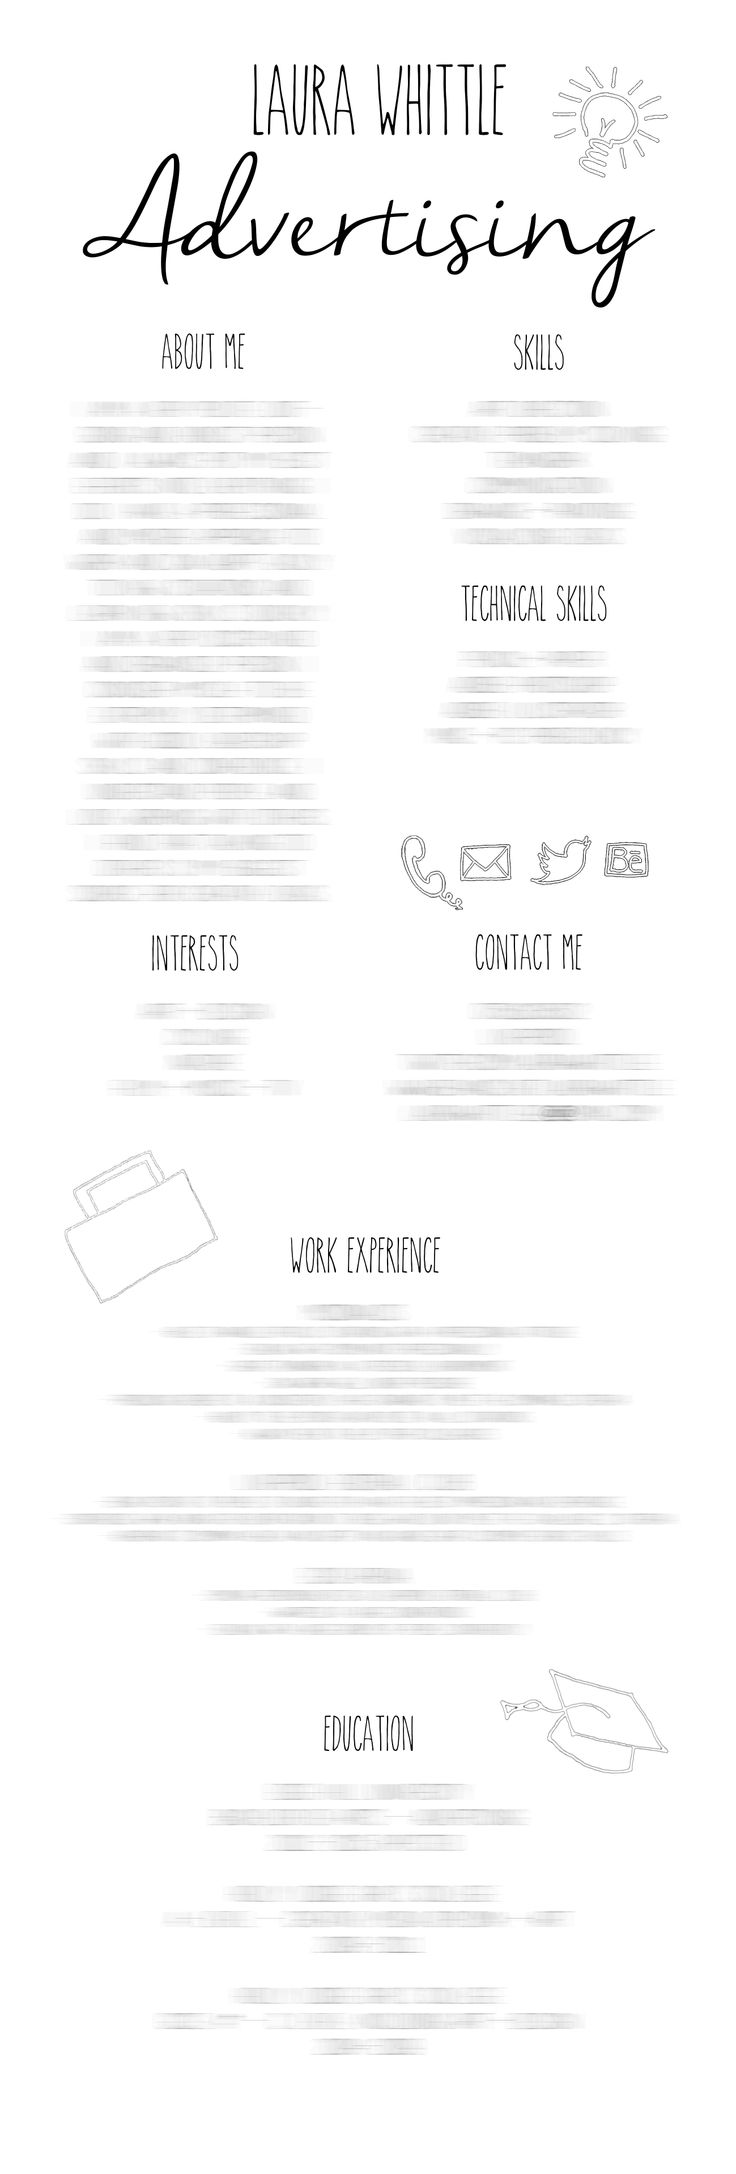 best images about cv fashion magazine layouts creative cv layout simple black white advertising branding student